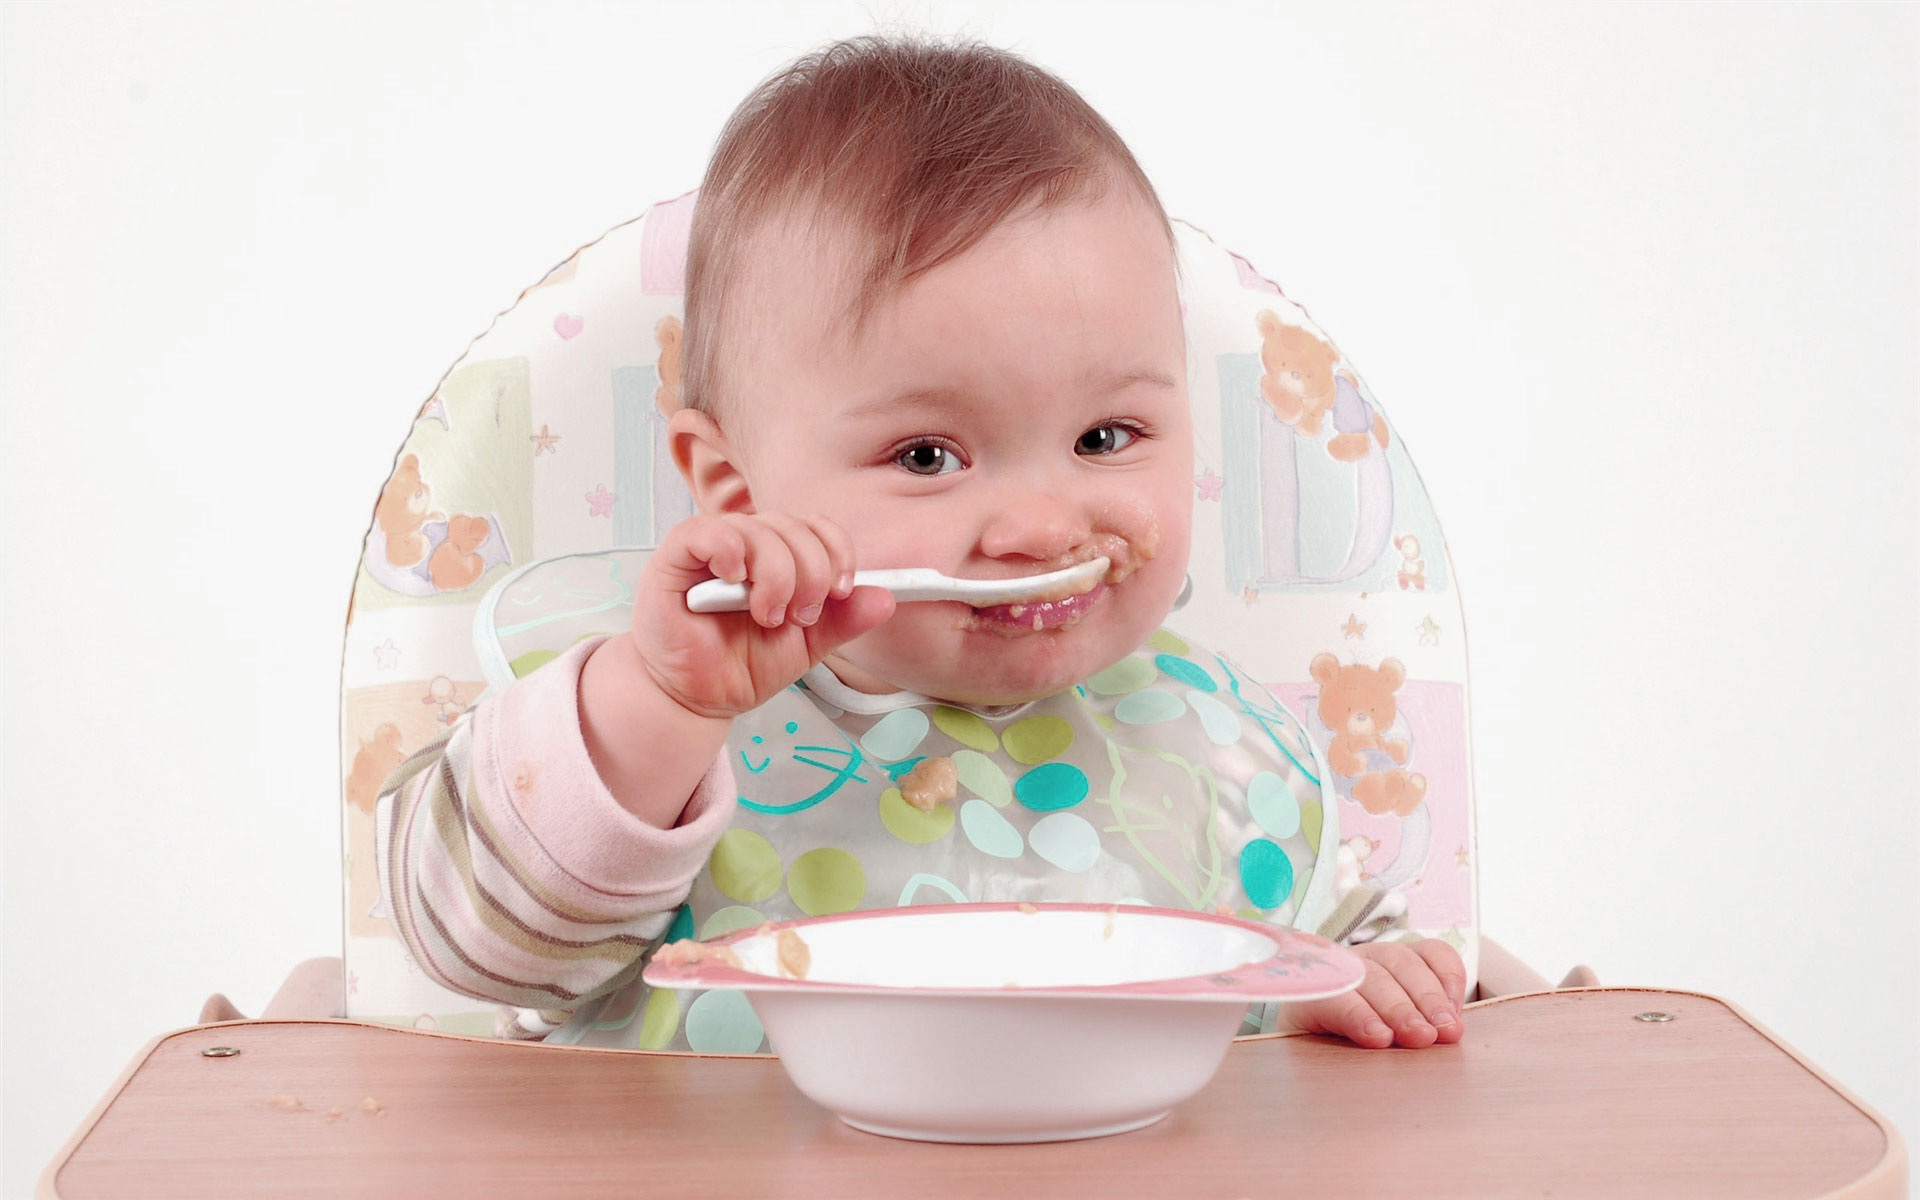 Cute baby self eating funny photo